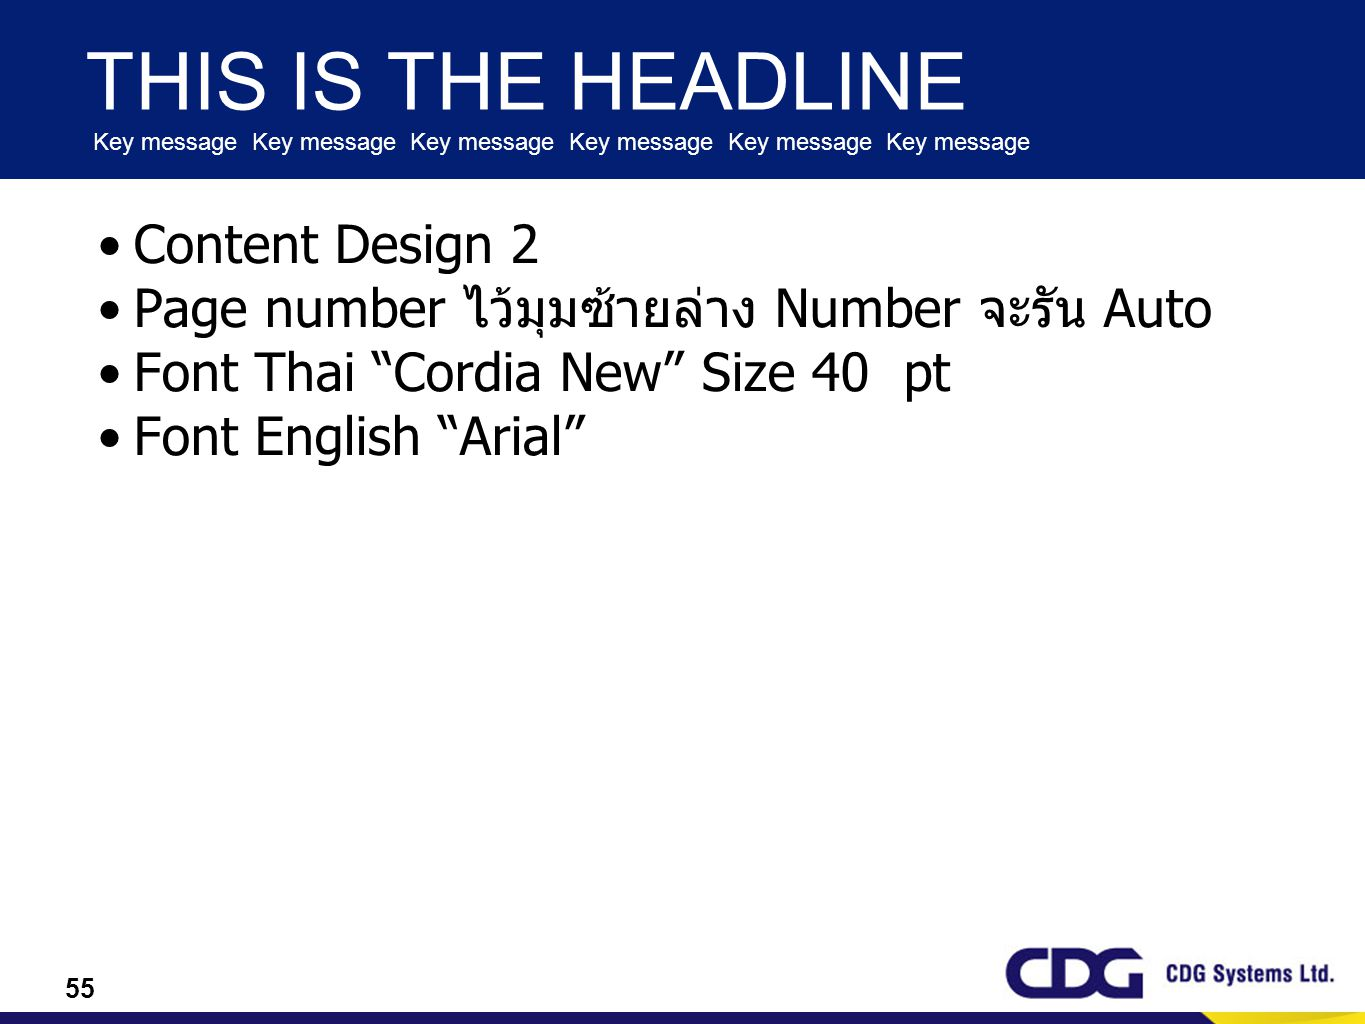 """55 THIS IS THE HEADLINE Key message Key message Key message Content Design 2 Page number ไว้มุมซ้ายล่าง Number จะรัน Auto Font Thai """"Cordia New"""" Size"""